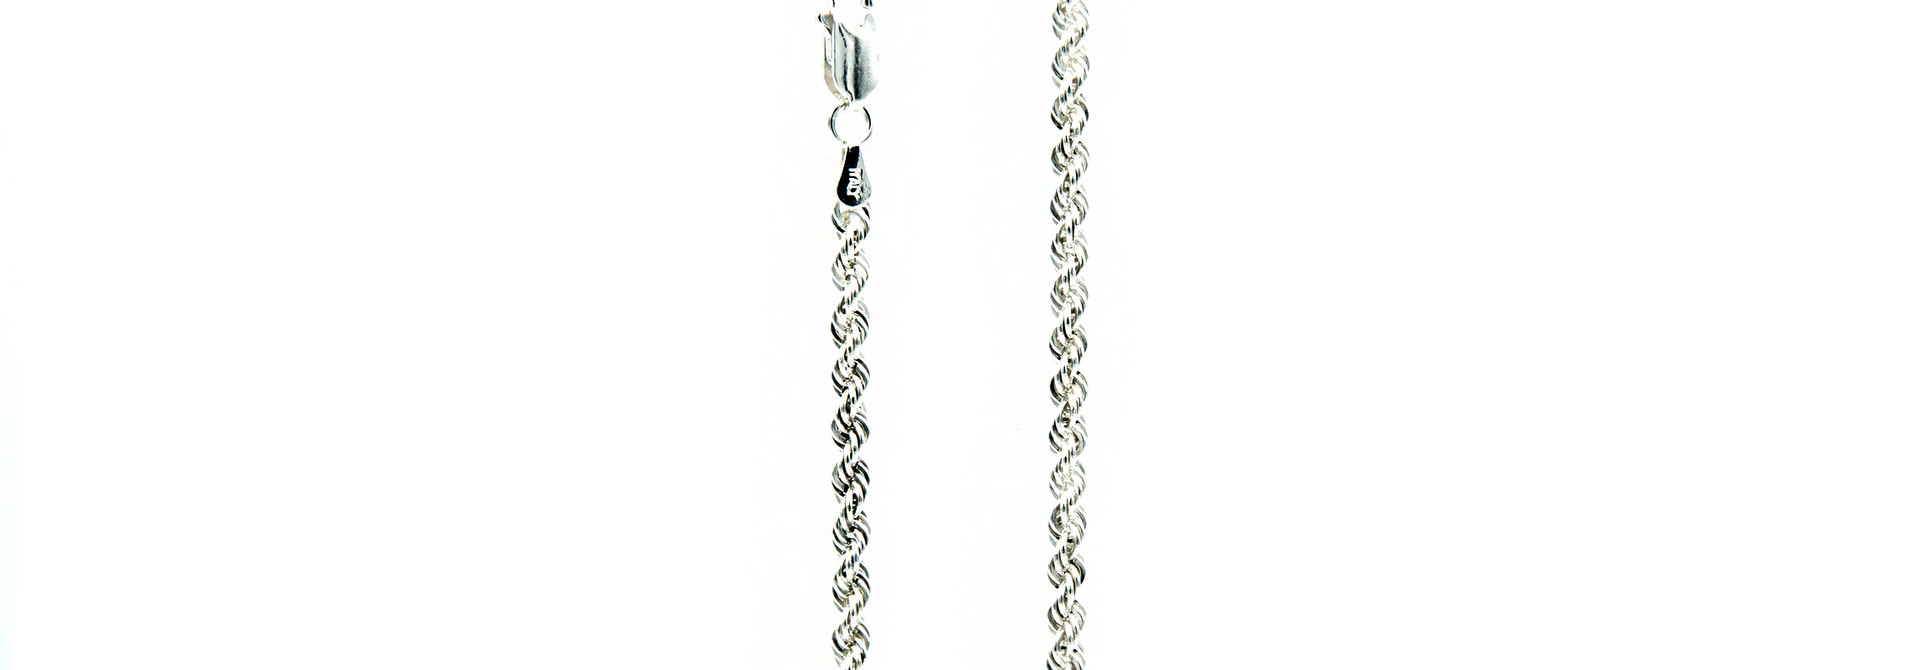 Ketting rope chain zilver